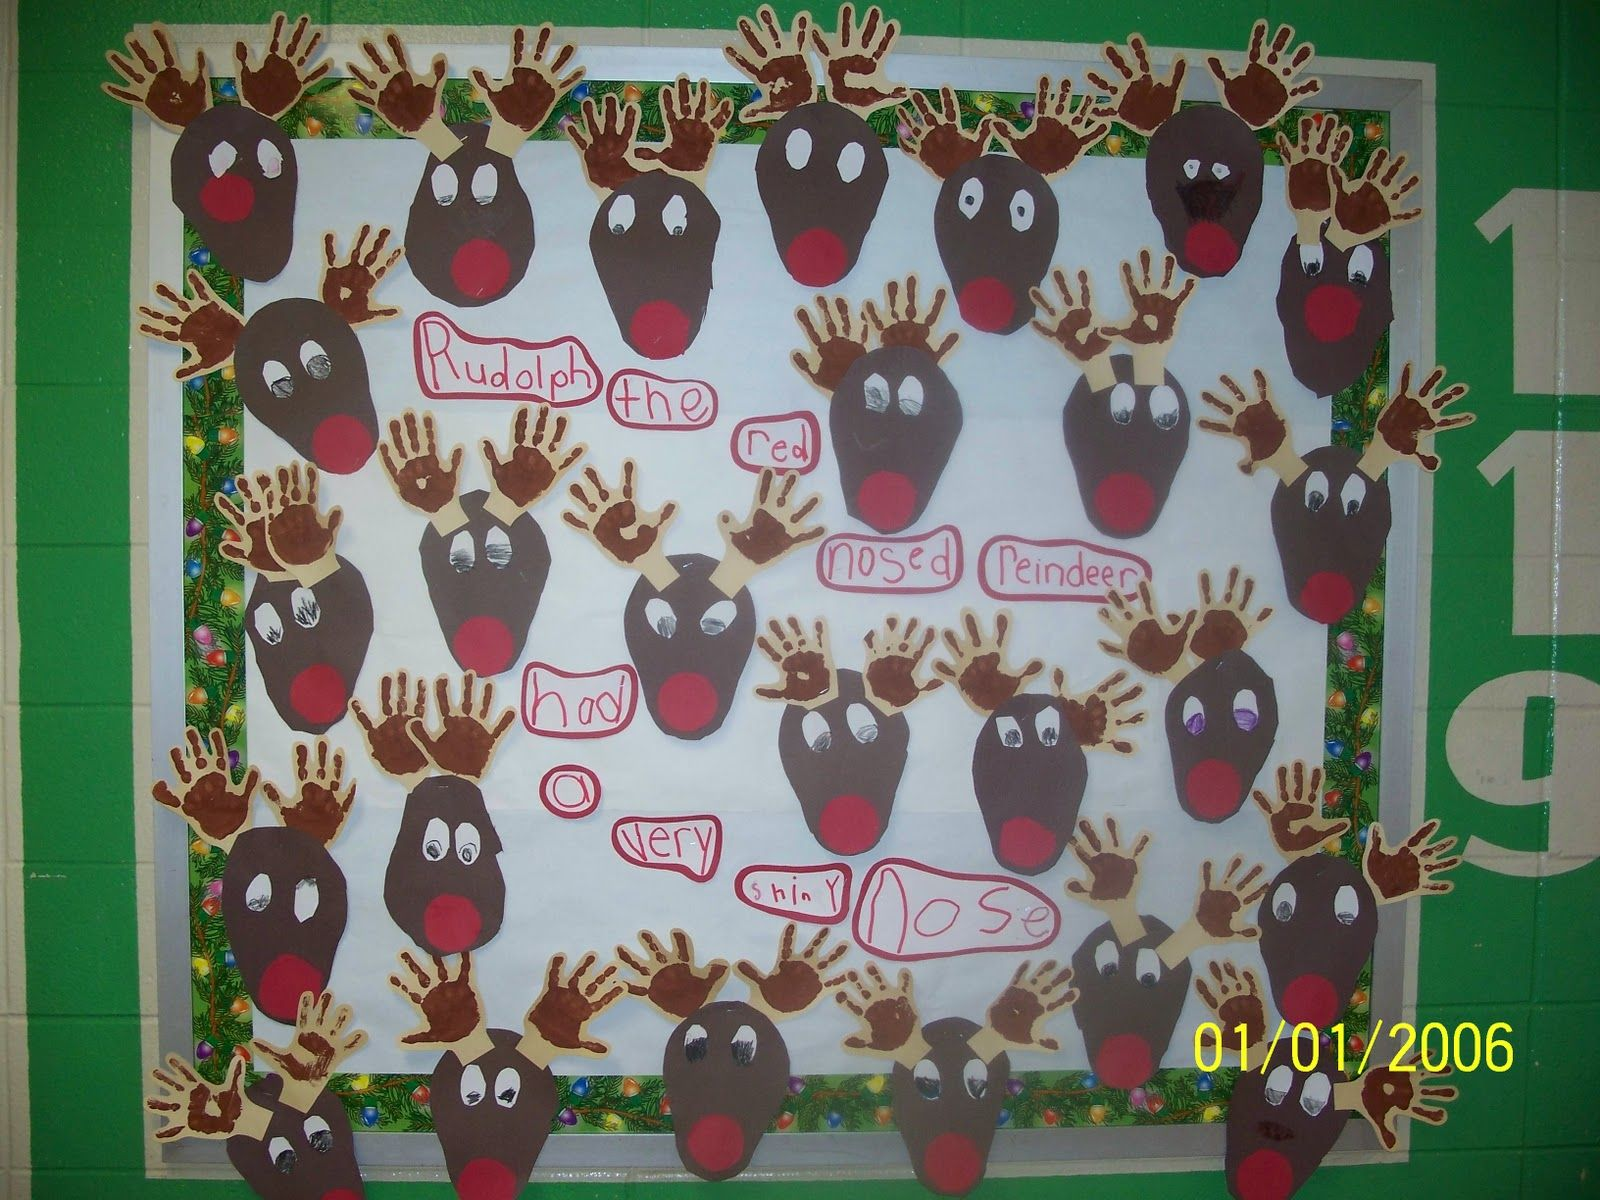 Preschool Classroom Decoration For Christmas ~ Classroom decoration for idea preschool bulletin board